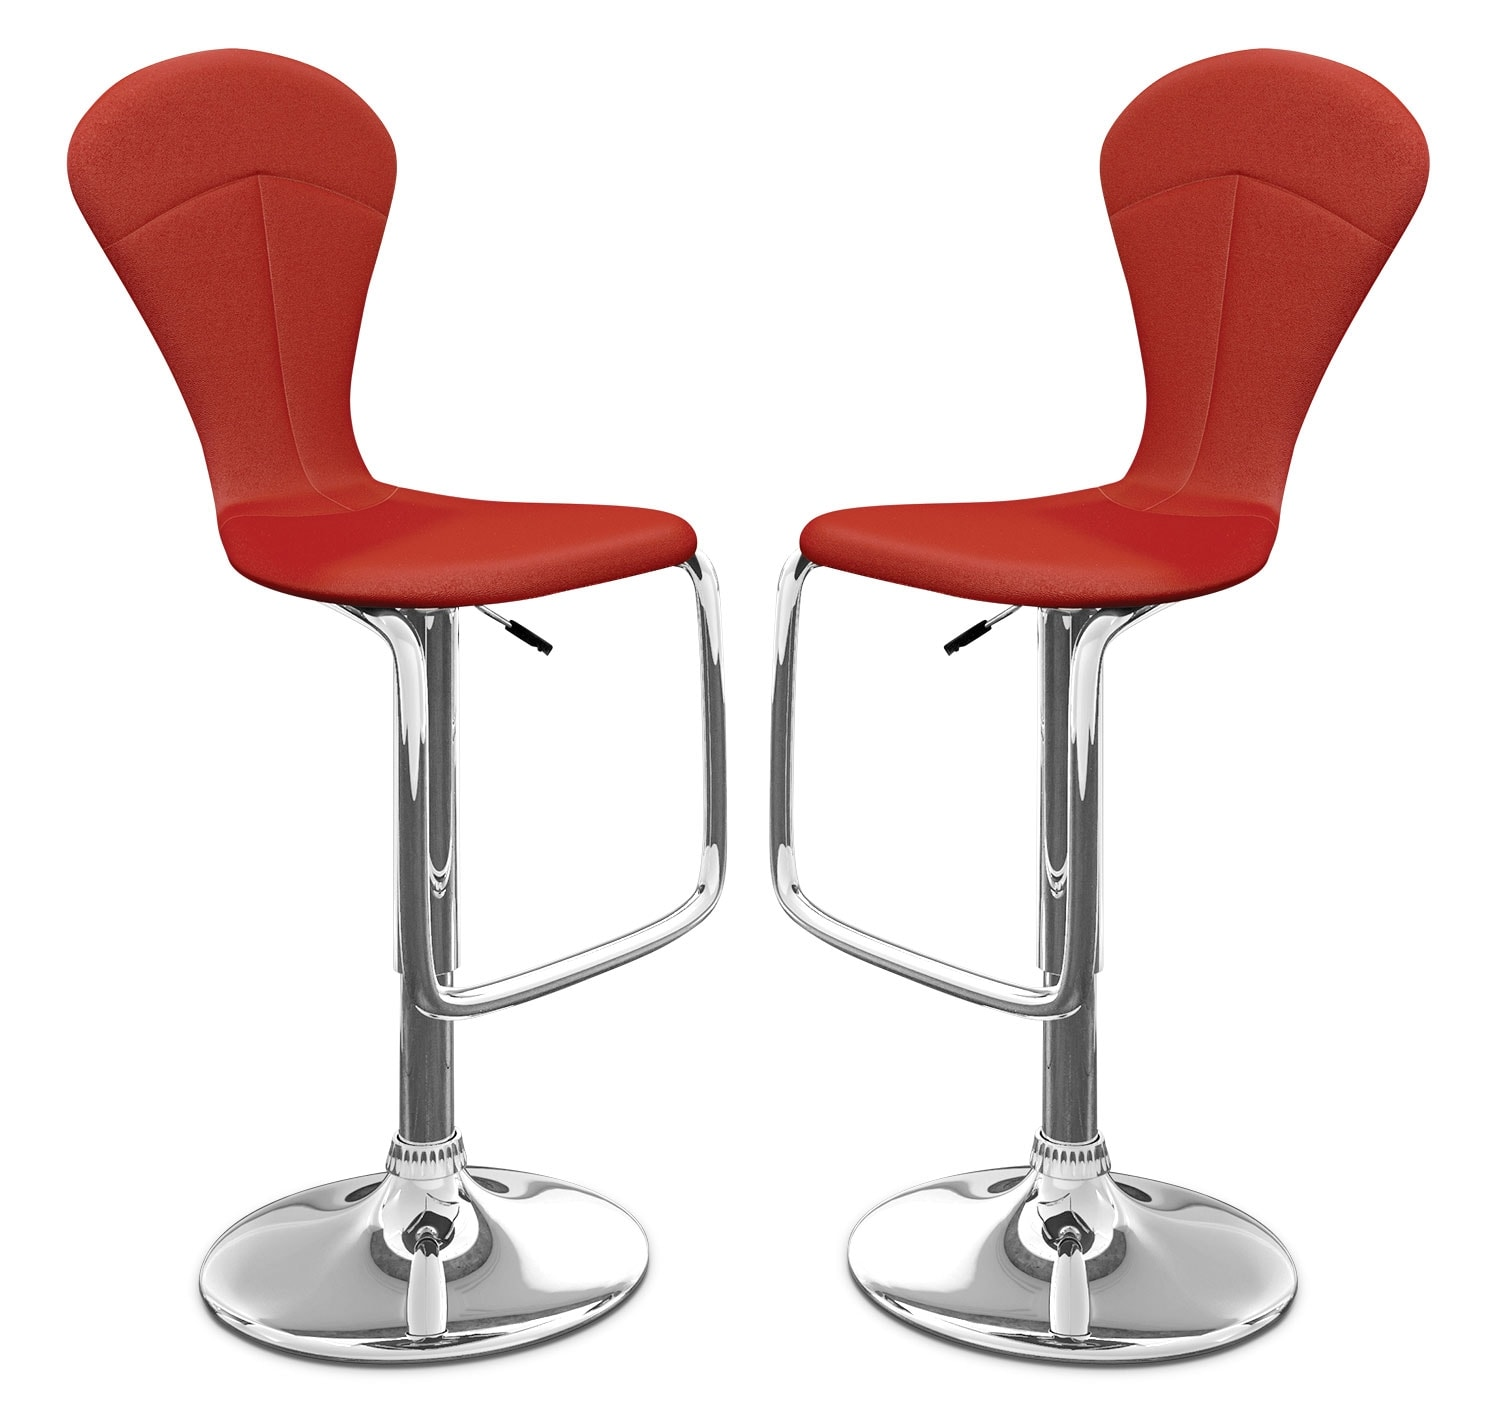 CorLiving Tapered Full-Back Adjustable Bar Stool, Set of 2 – Red